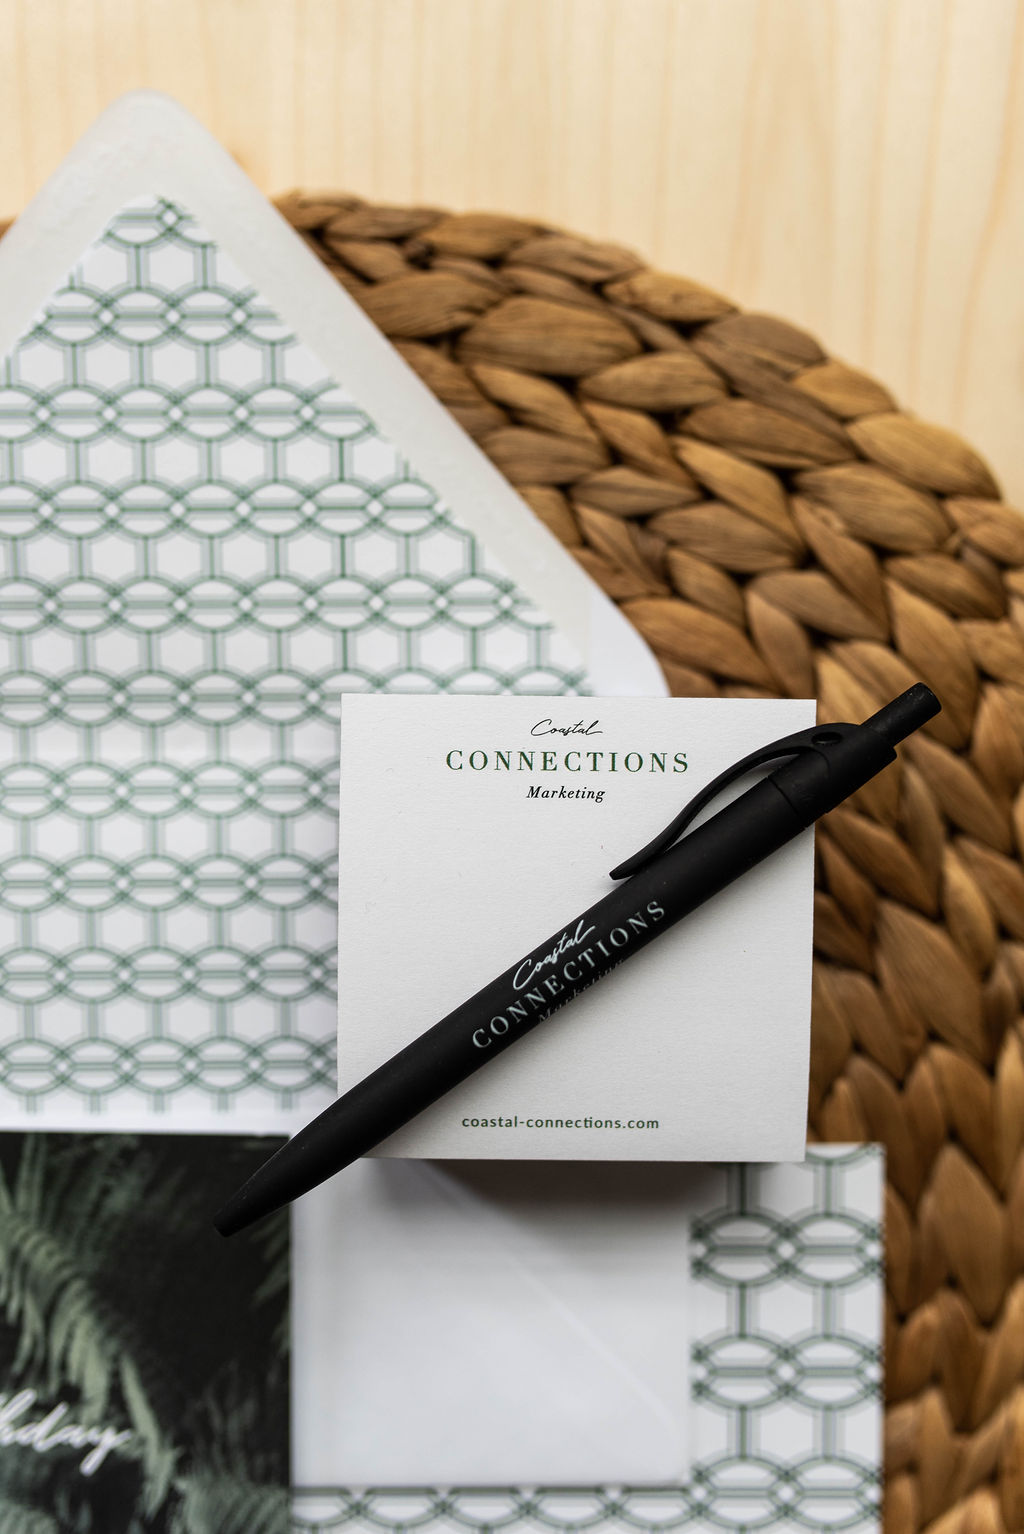 Coastal Connections Marketing – professional coastal branding – Hayley Bigham Designs – Tulsa Oklahoma Branding Studio – promotional product company